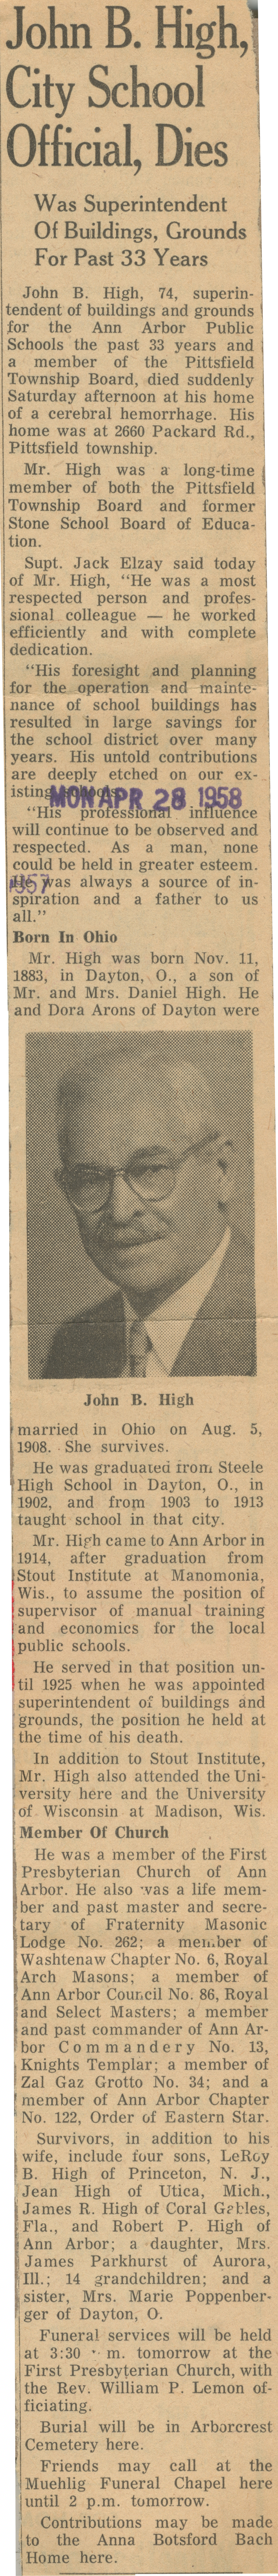 John B. High, City School Official, Dies image